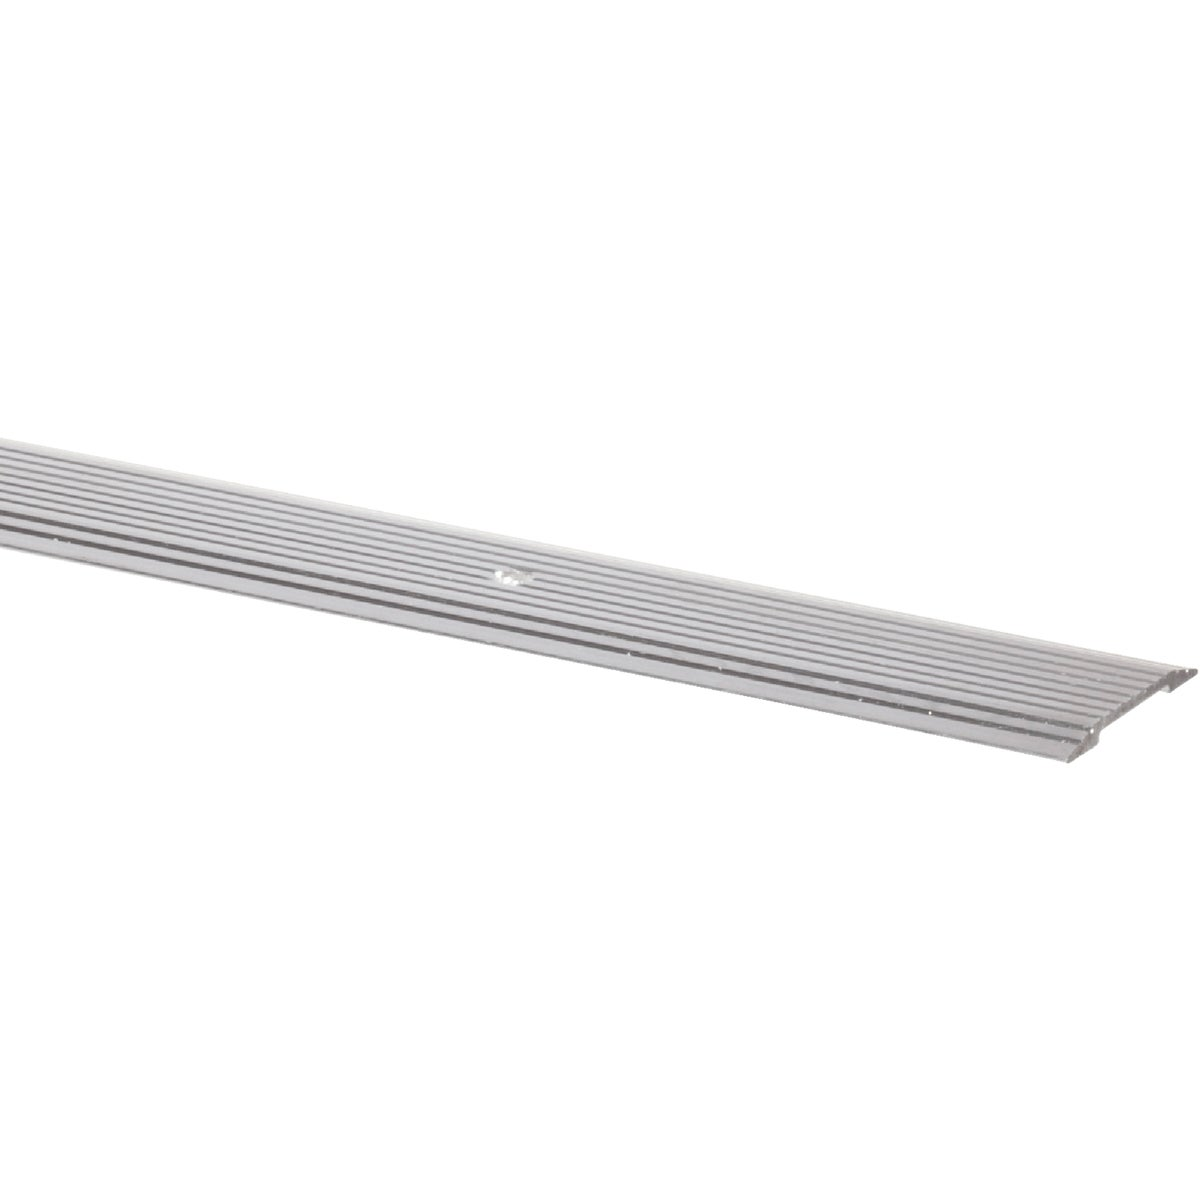 "1-1/4""X6' SLVR BINDING - 78097 by M D Building Prod"